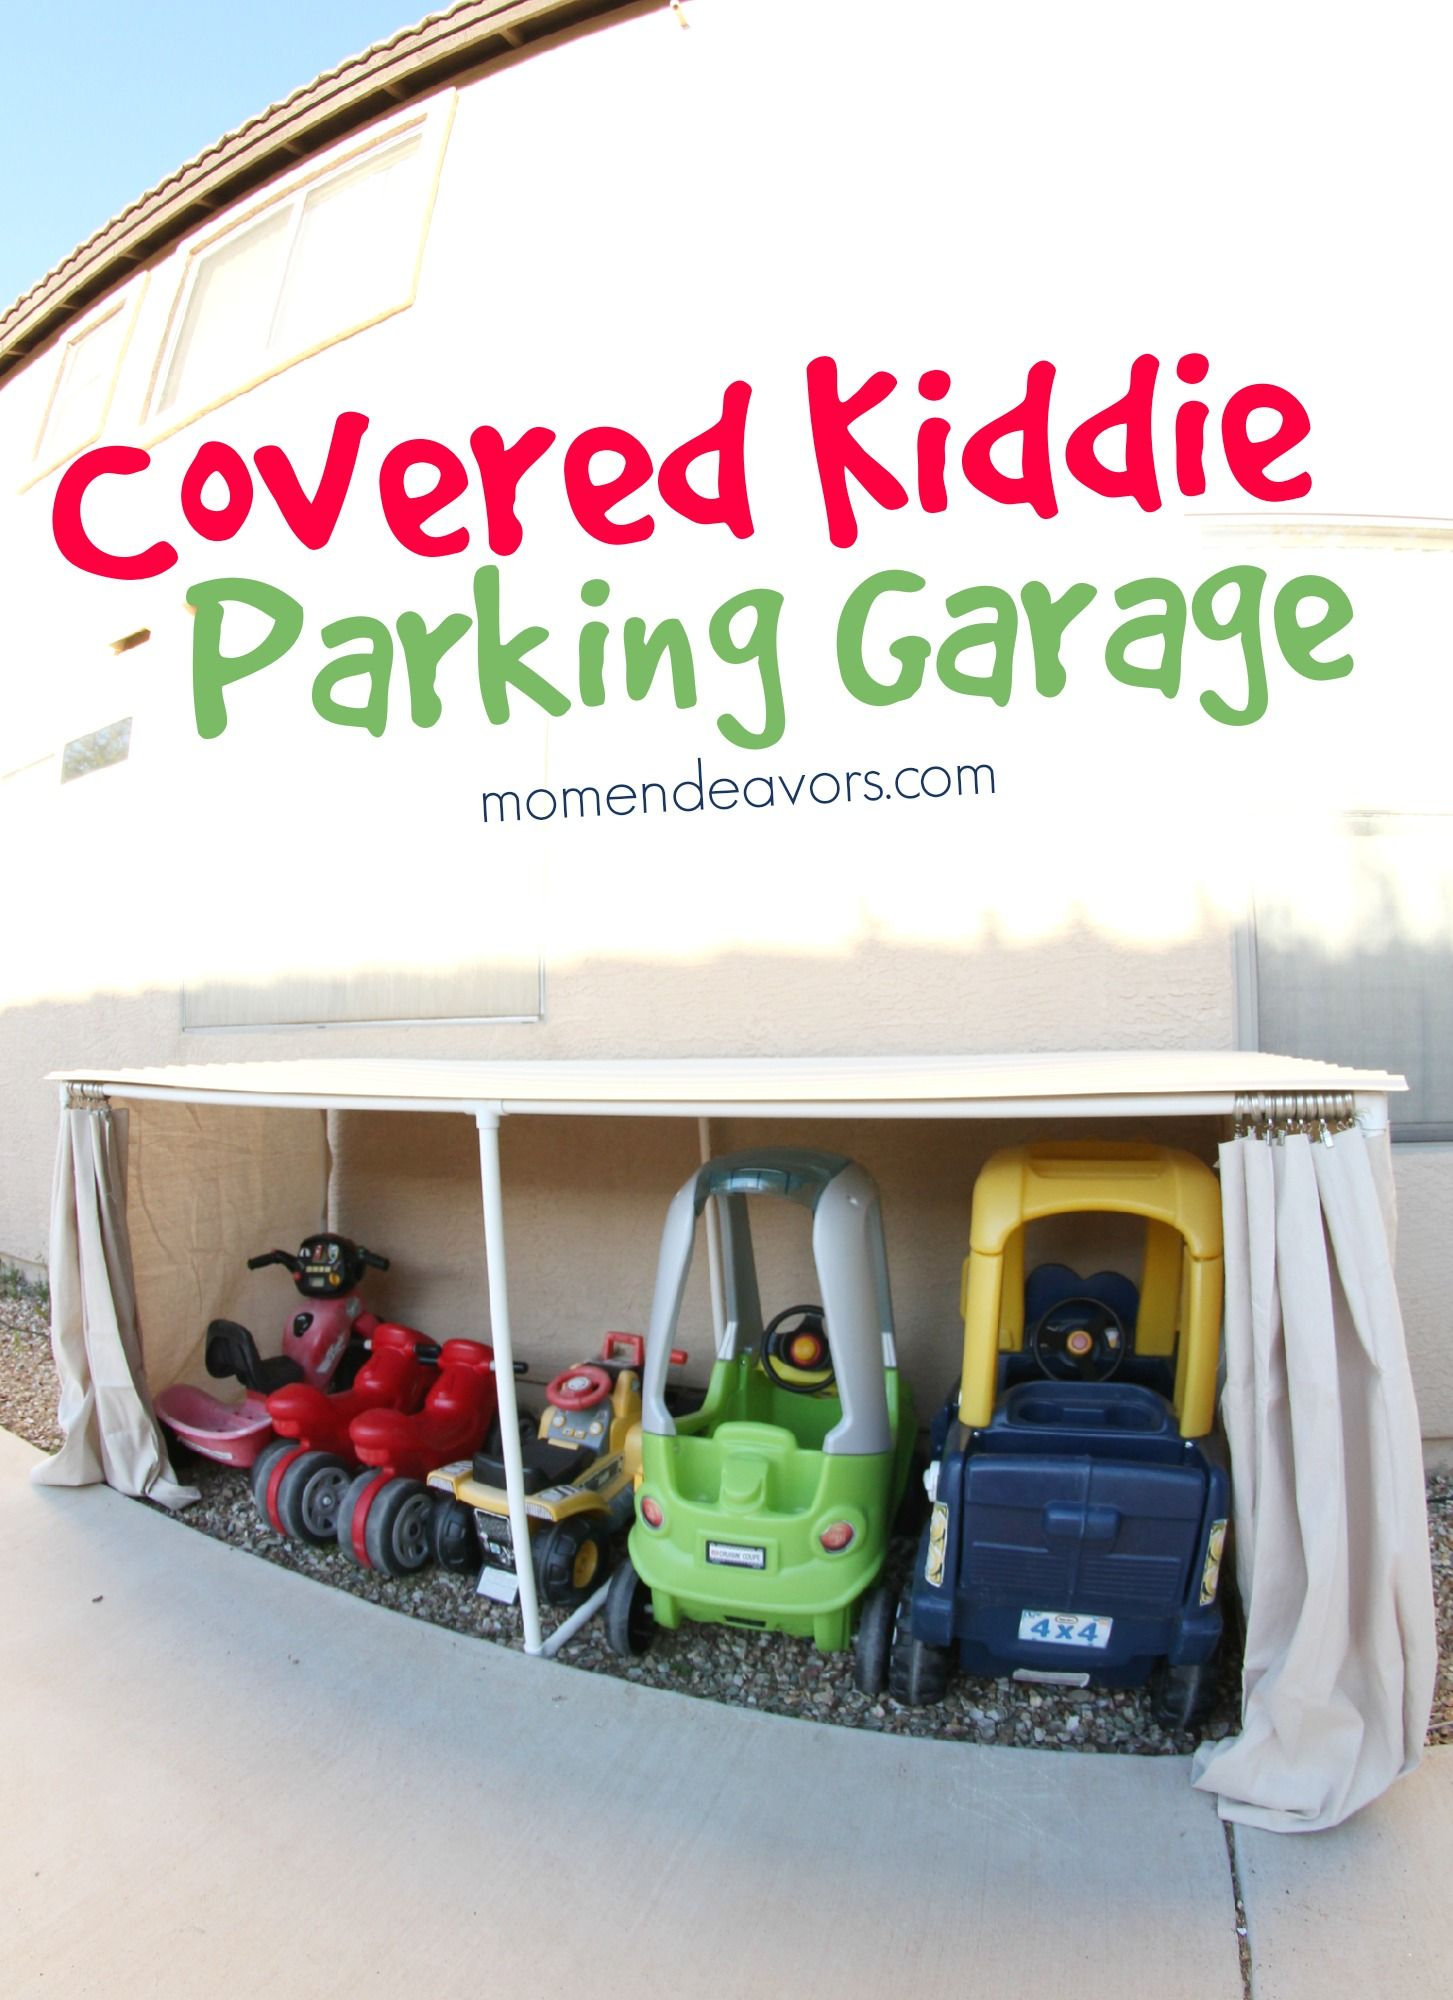 Covered Kid Car Parking Garage Free Up E In The Actual